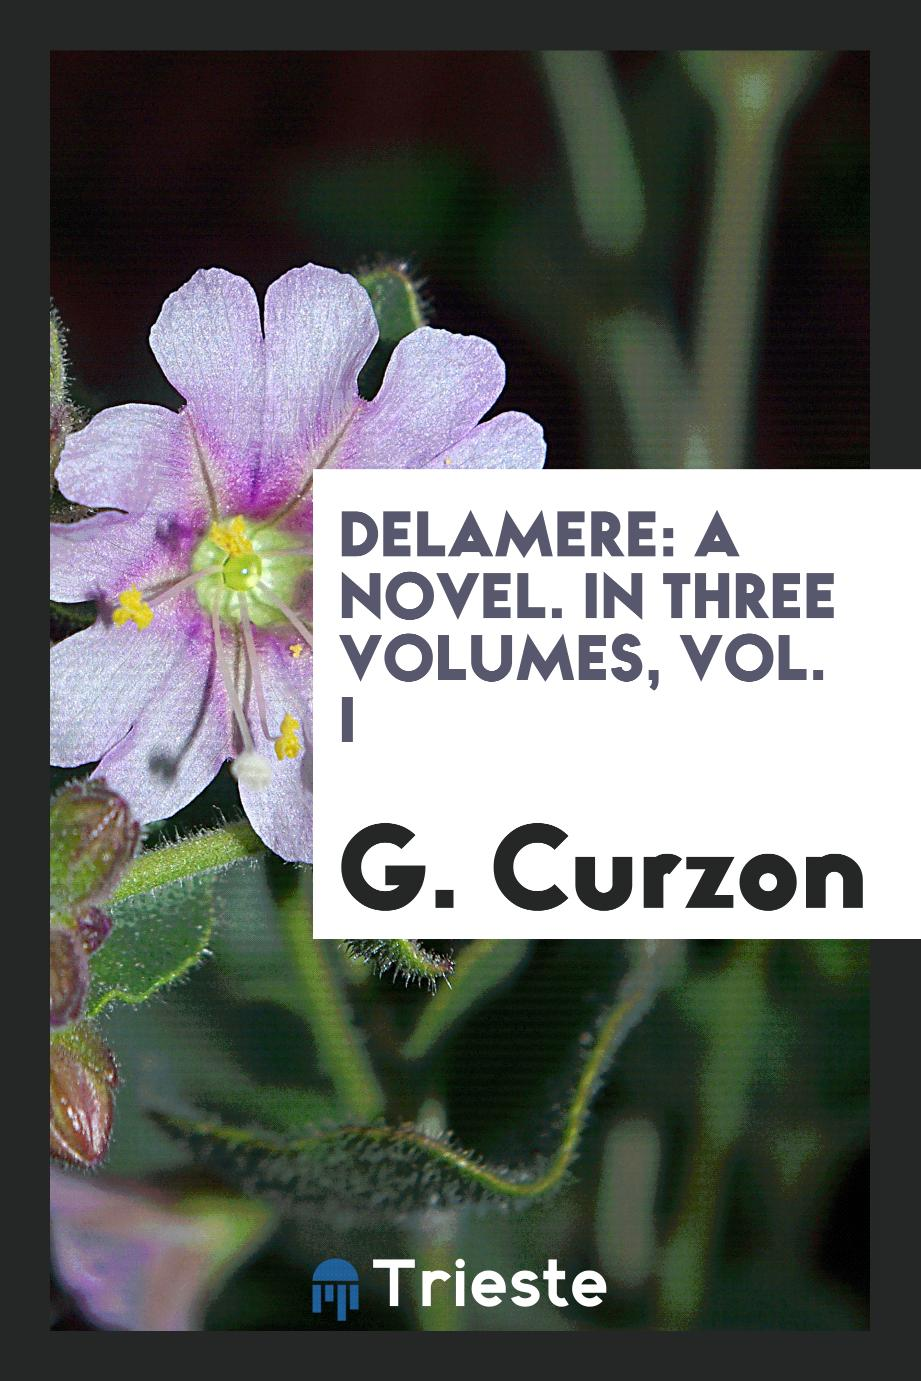 Delamere: a novel. In three volumes, vol. I